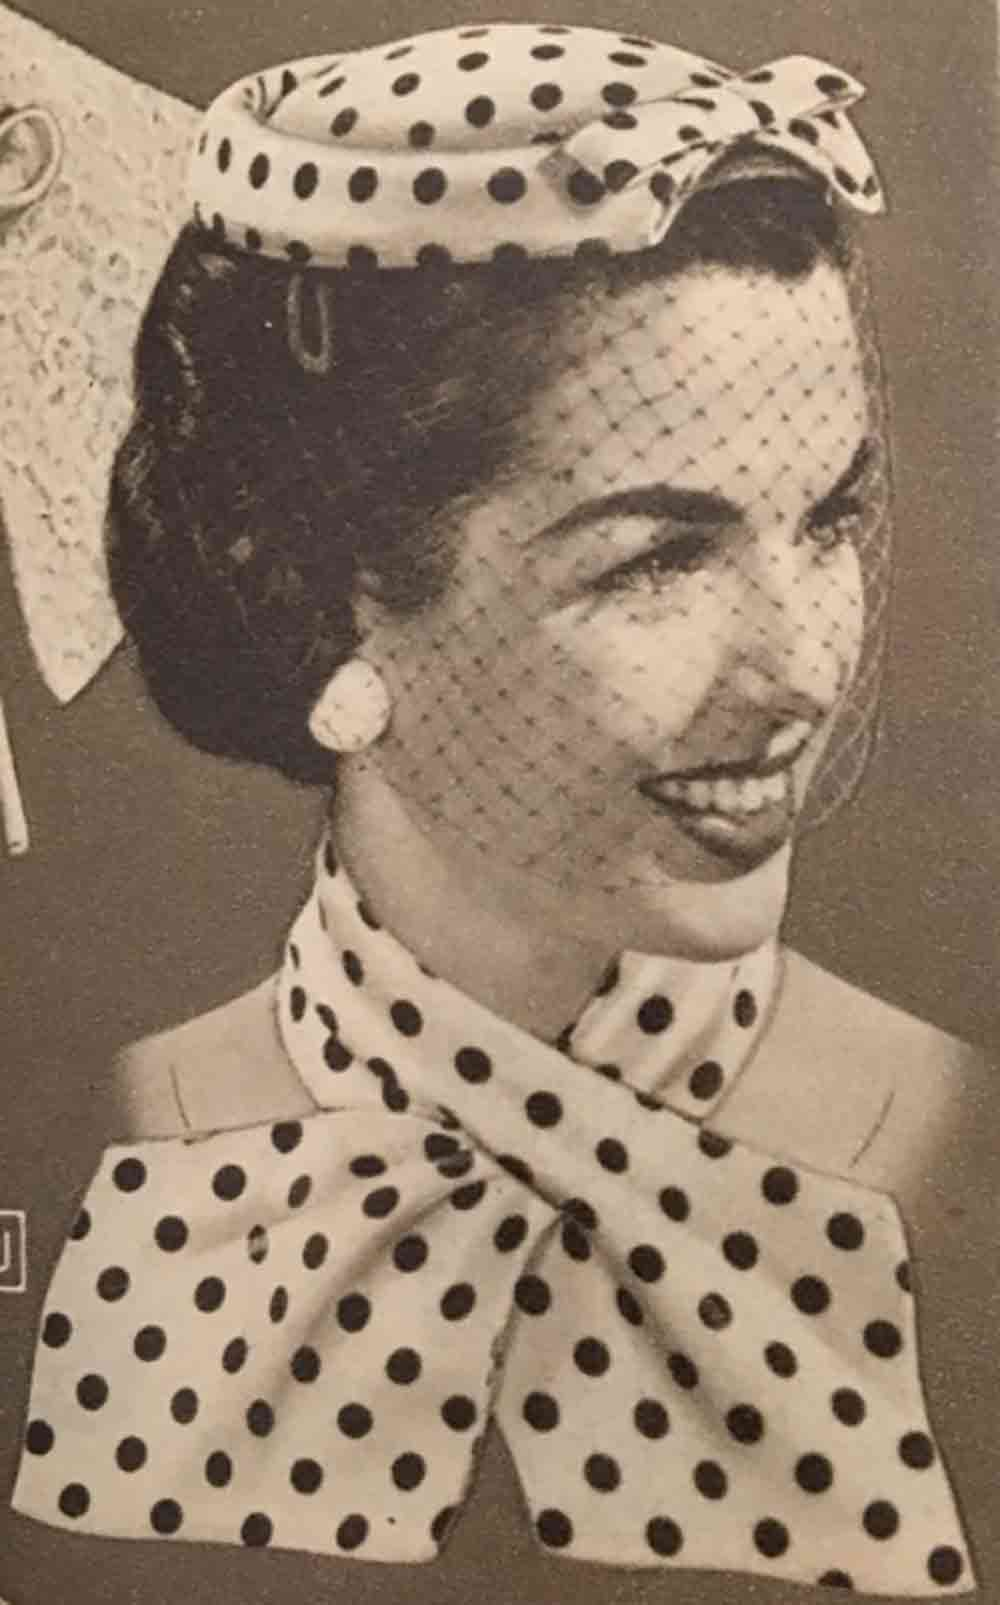 Image of a 1940s Polka Dot hat and scarf used in a blog post about Polka Dot flooring by forthefloorandmore.com